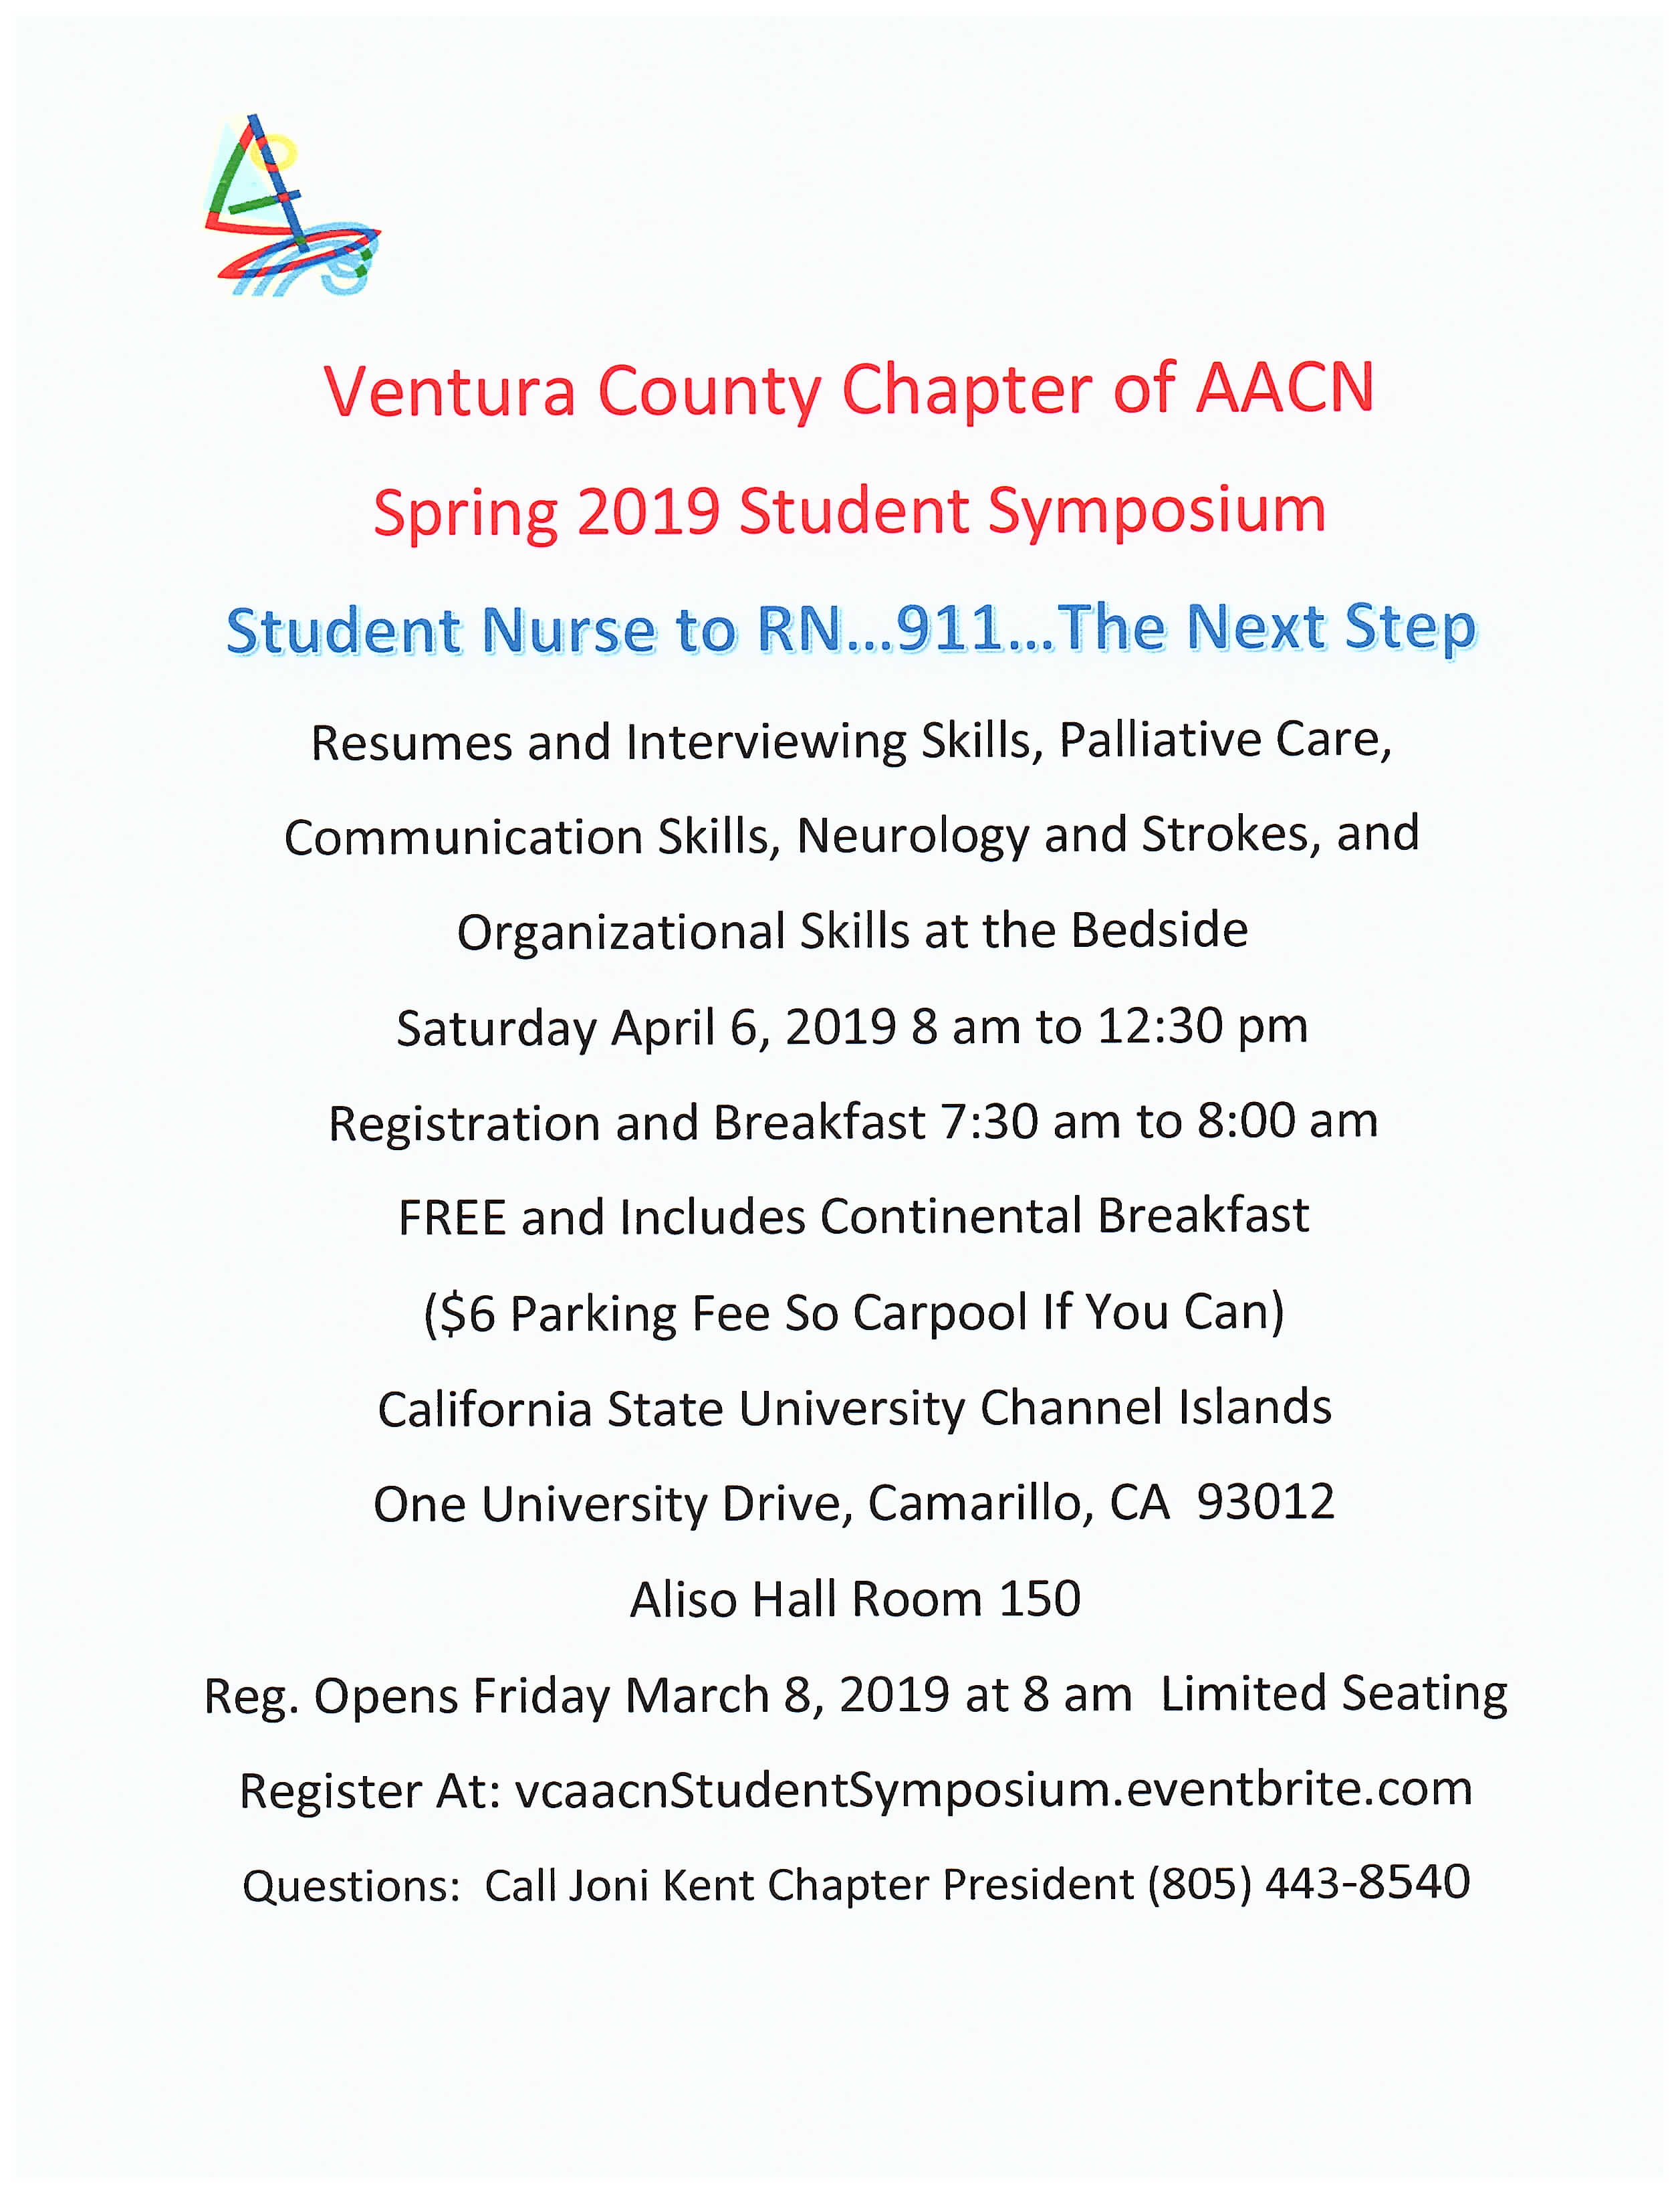 Ventura Chapter AACN Conference to be held on April 6, 2019